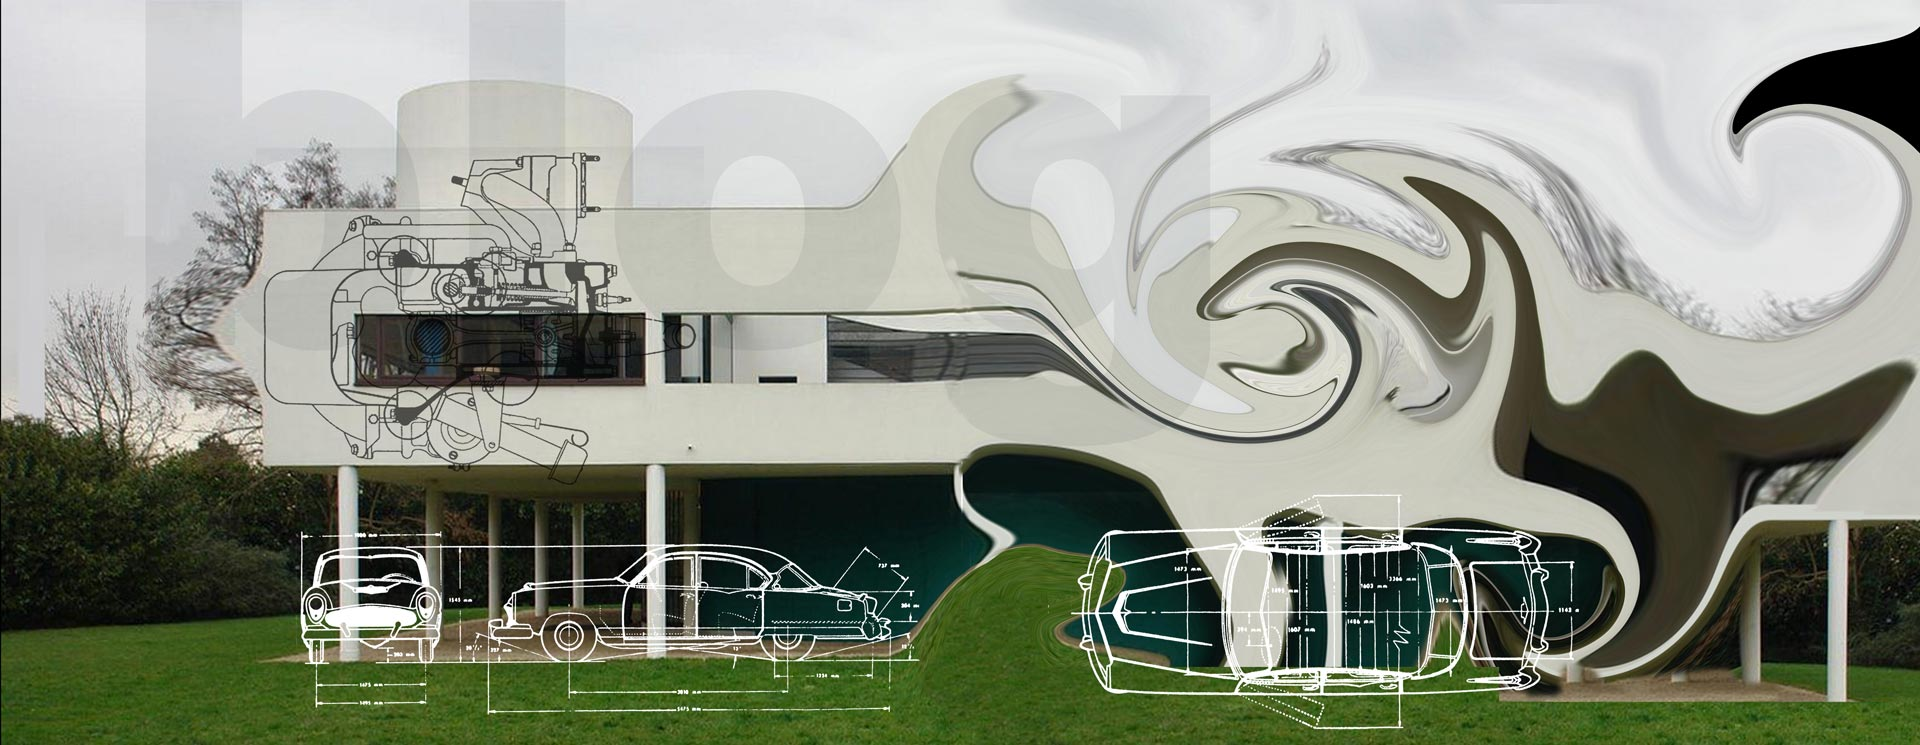 Le Corbusier the Magic Serpent and the Kayser Caravel